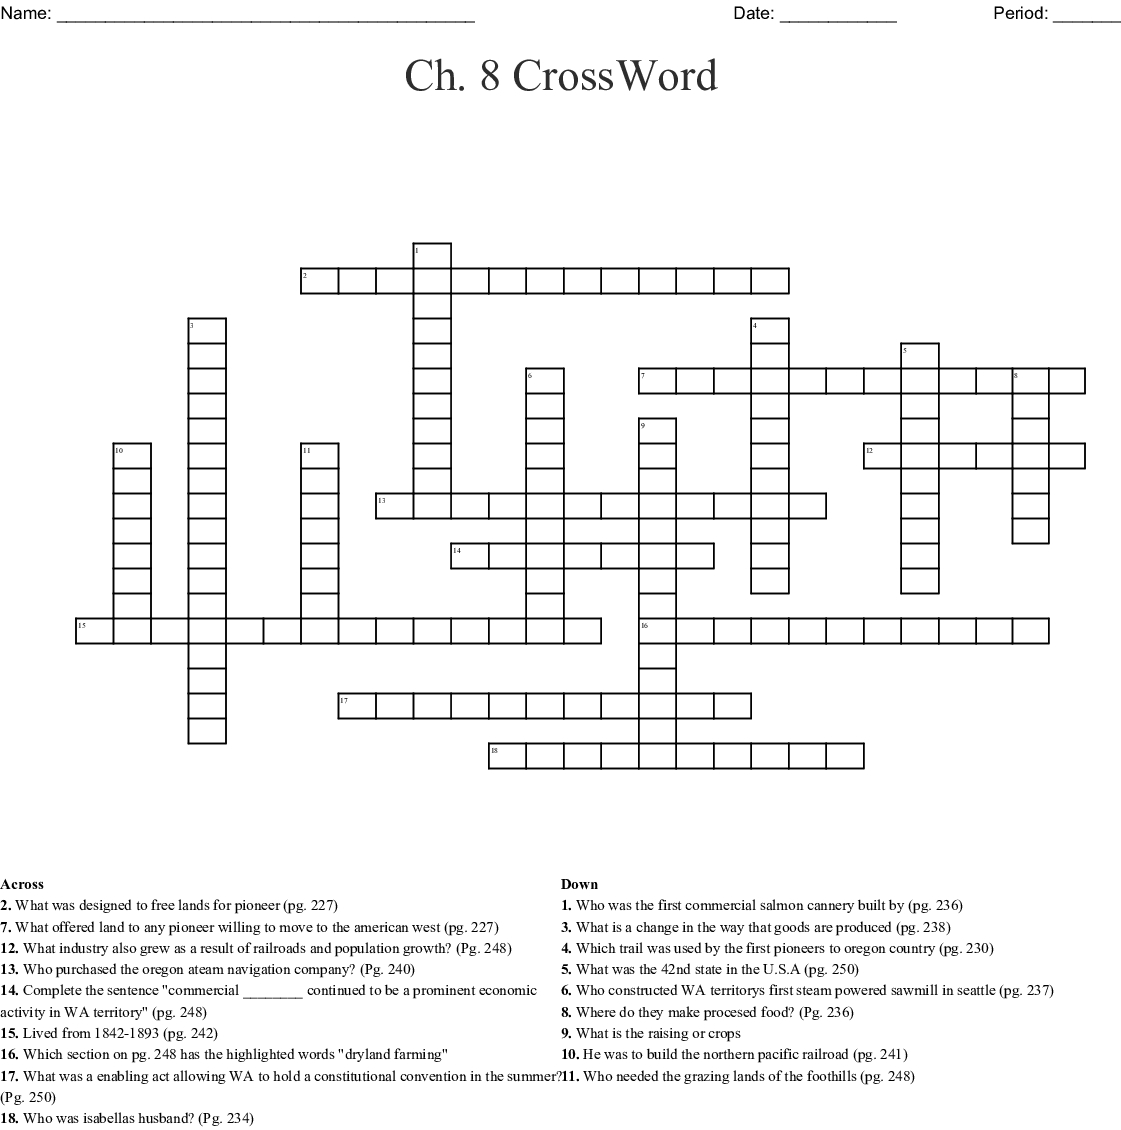 Ch. 8 Crossword – Wordmint Within Chapter 8 Crossword Puzzle Us - Printable Us History Crossword Puzzles